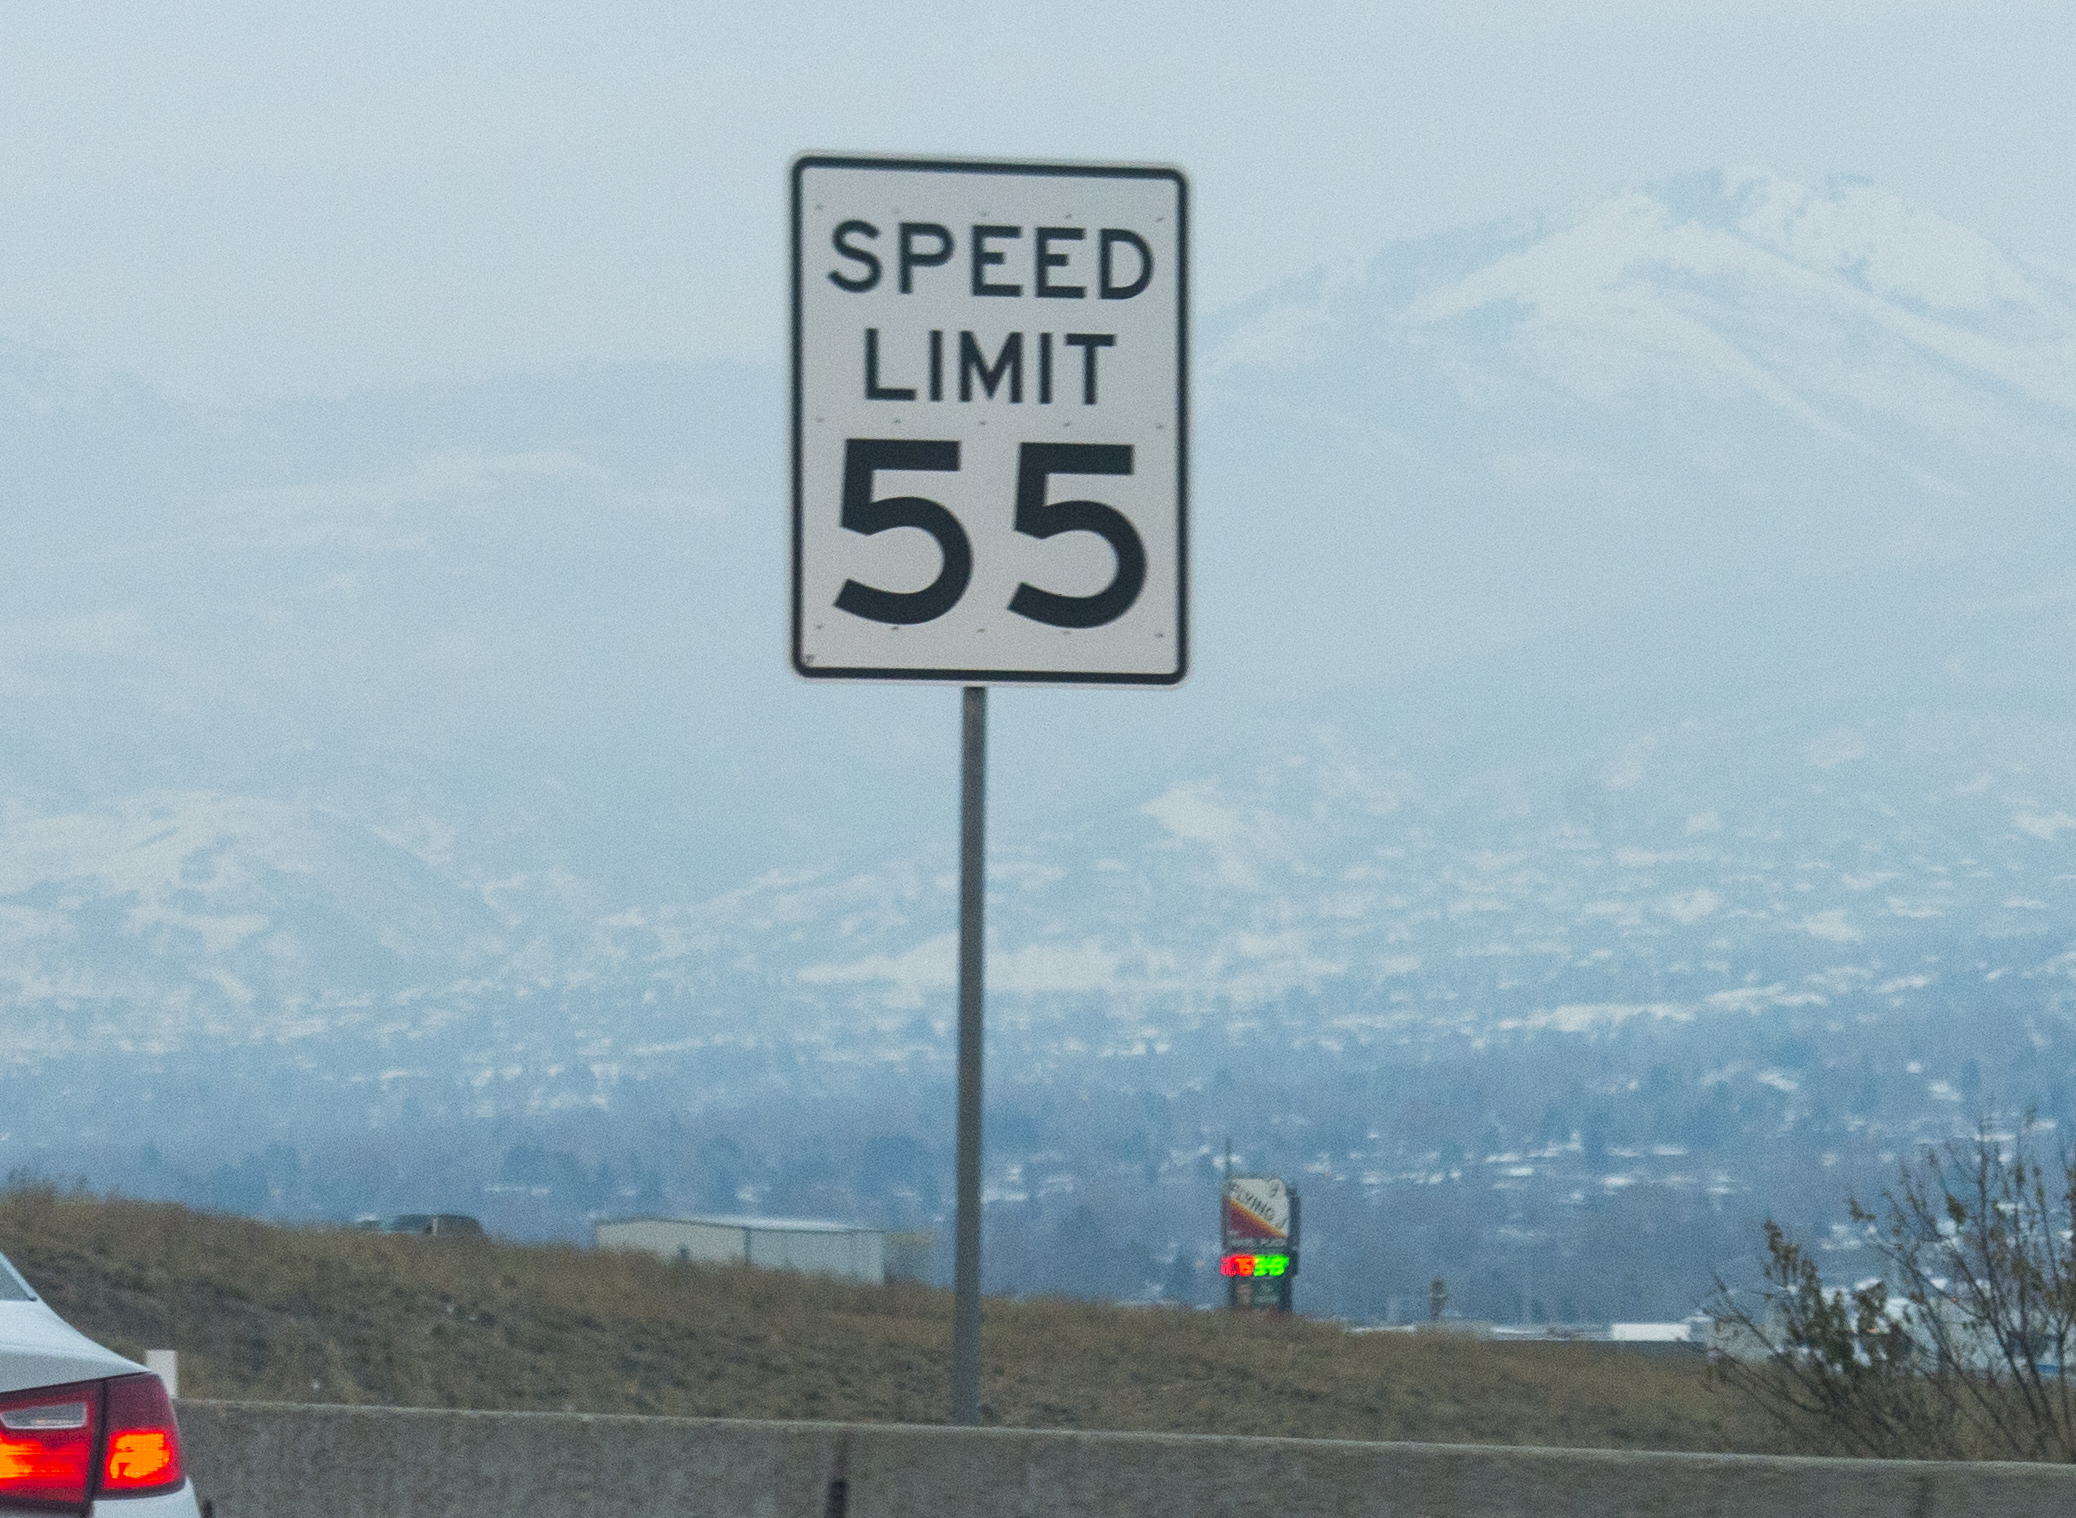 Legacy Parkway's truck ban and low speed limit will disappear without action by the Utah Legislature